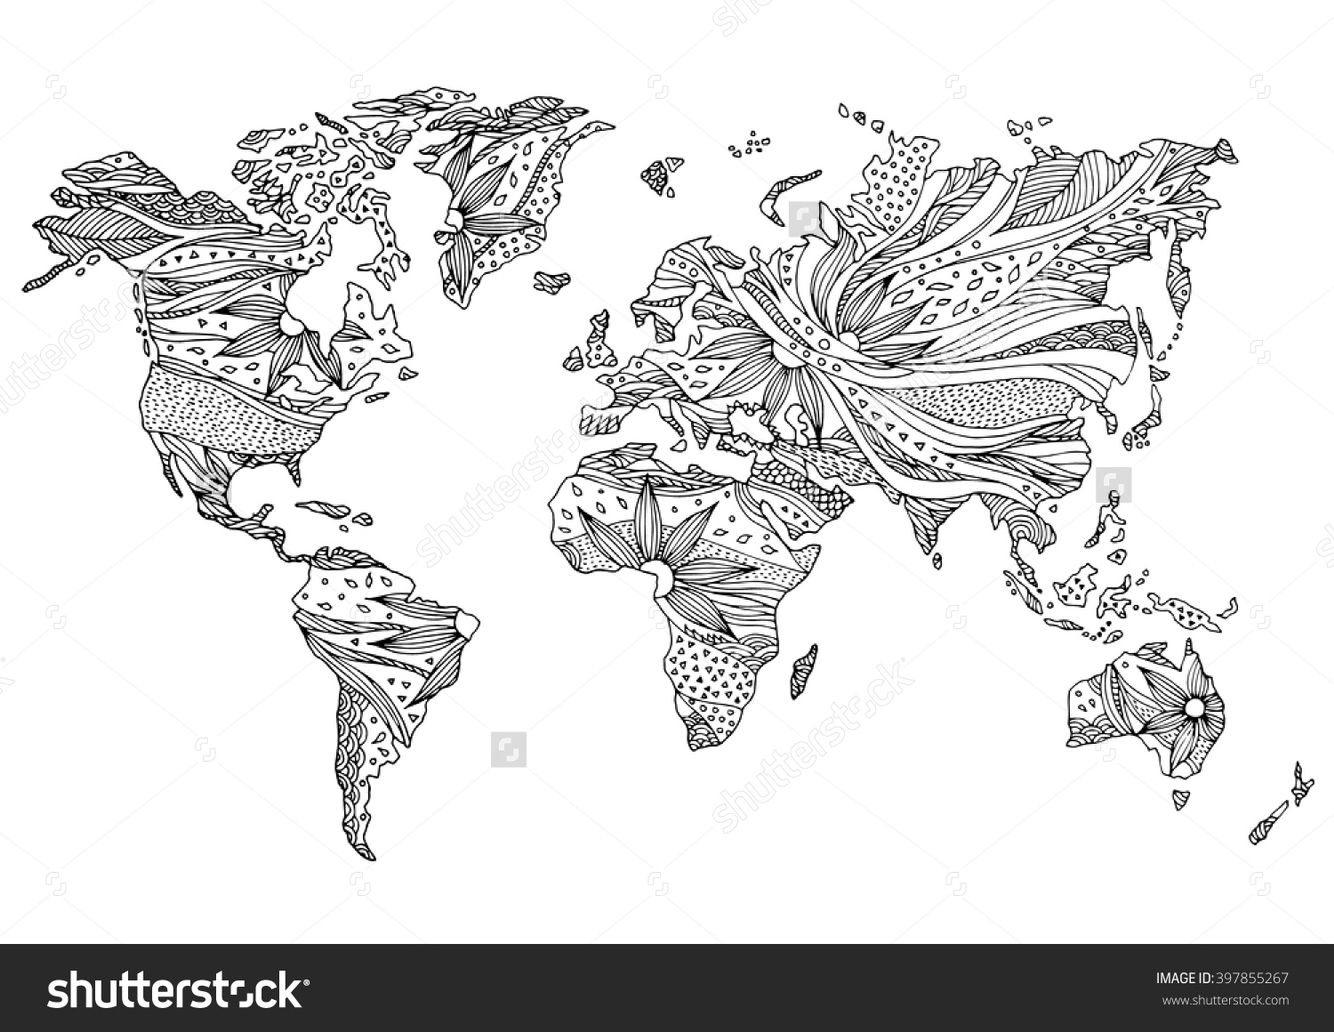 Hand drawn world map | Furnishings | Pinterest | Drawings, Map and ...